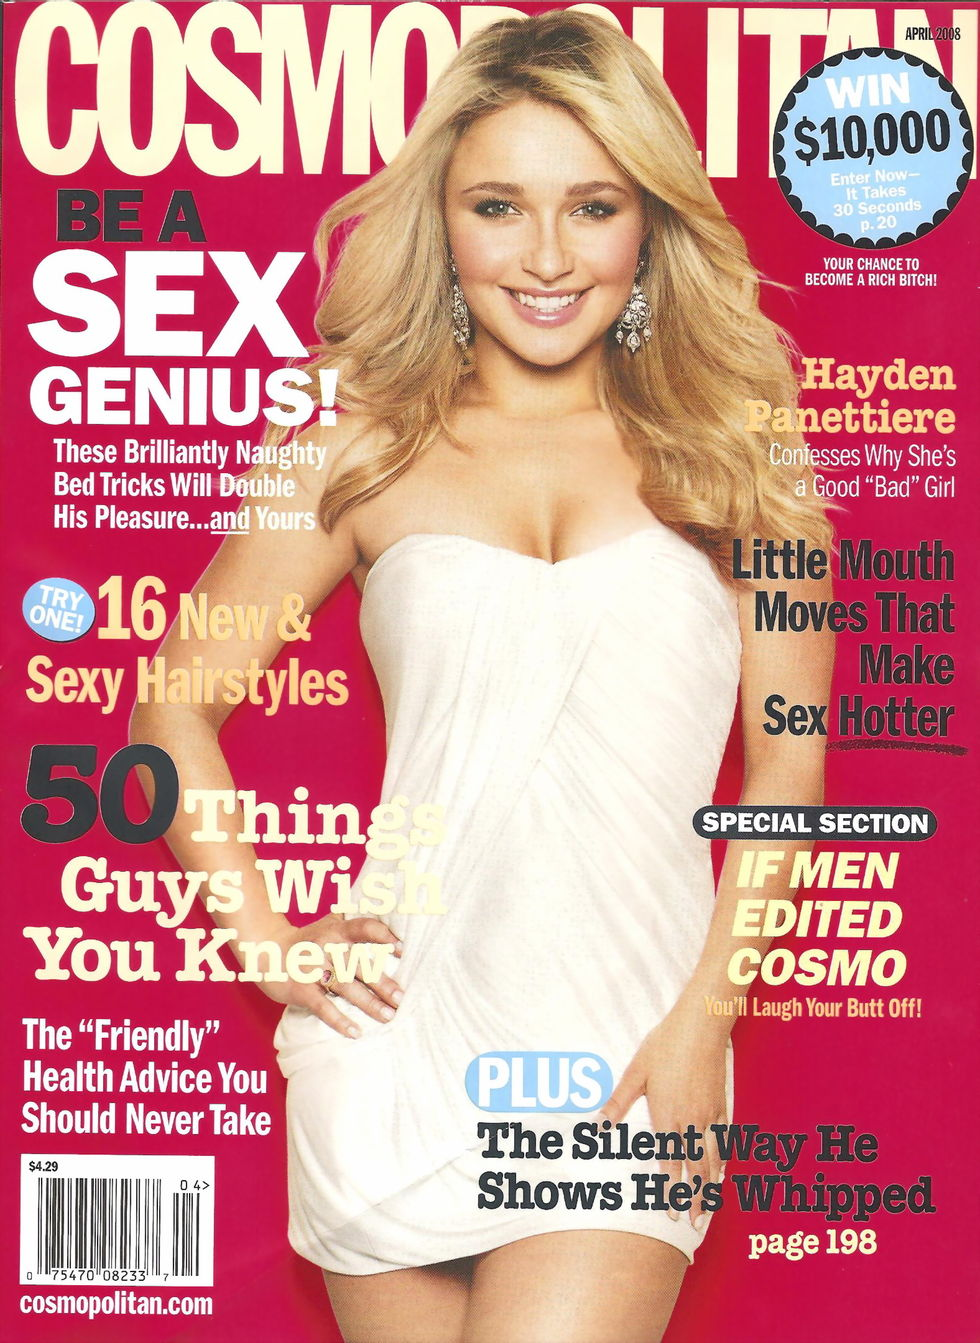 hayden-panettiere-cosmopolitan-magazine-april-2008-01